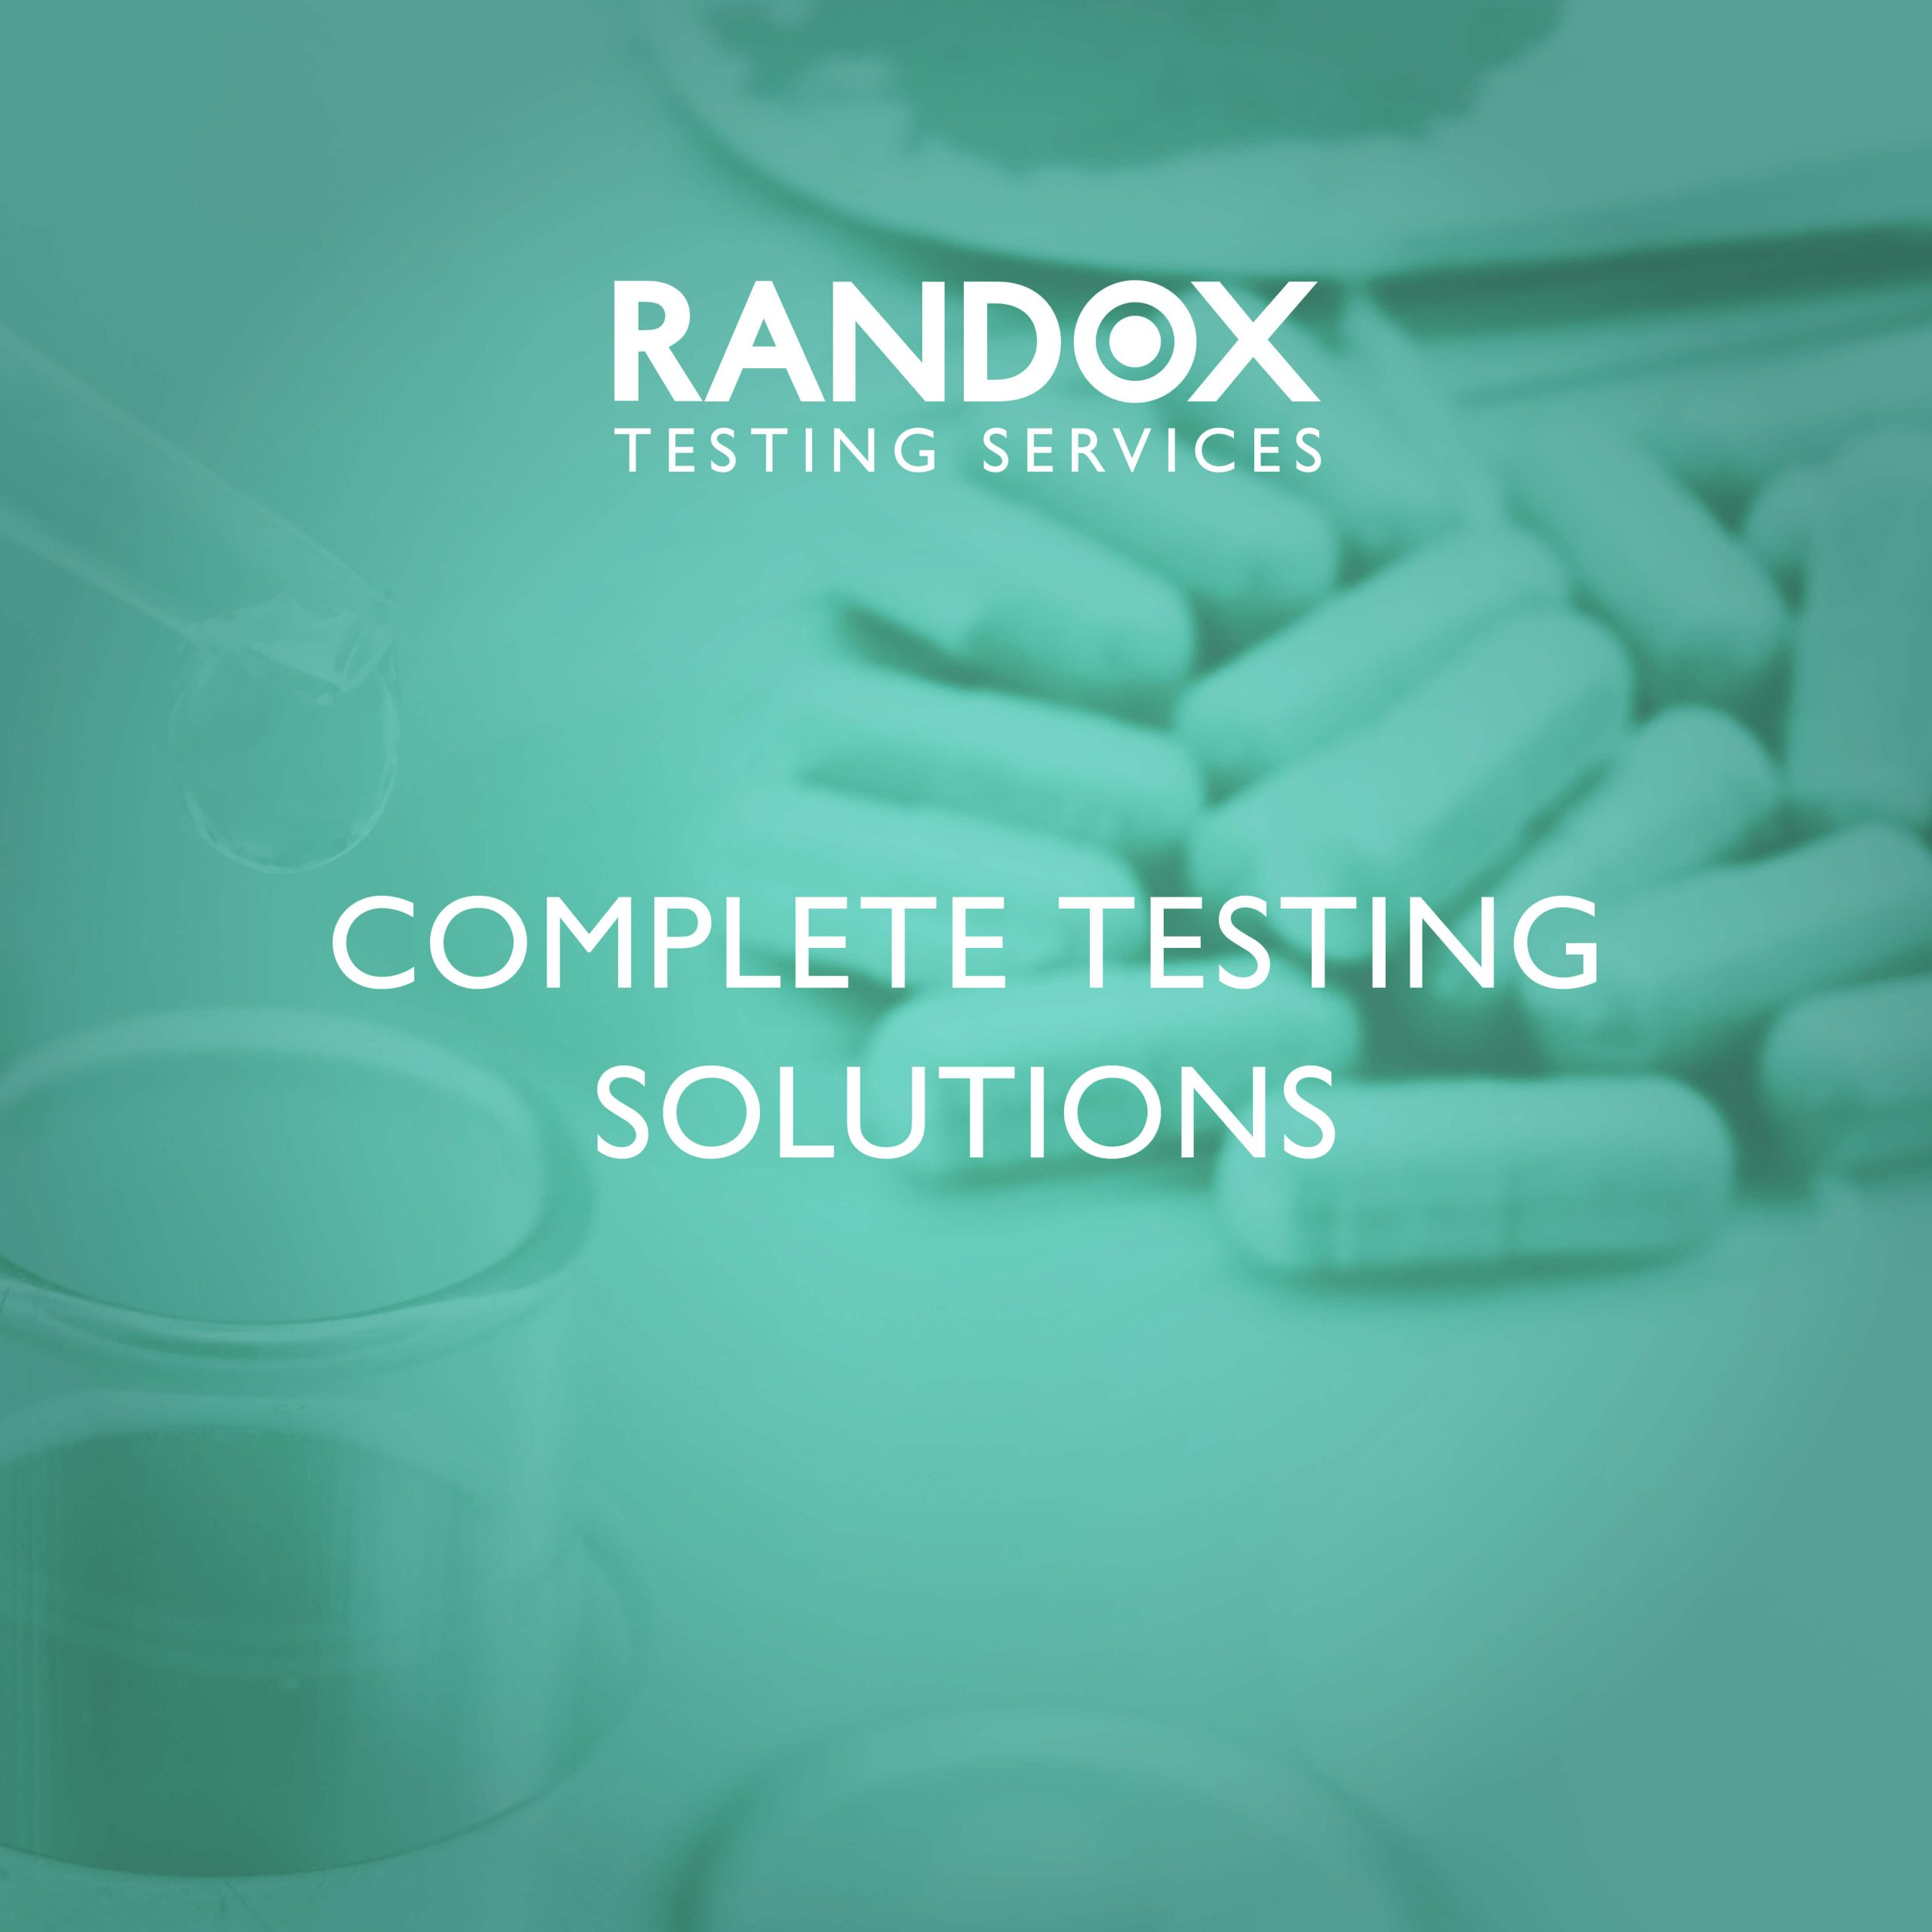 alcohol-drug-testing-solutions-rts